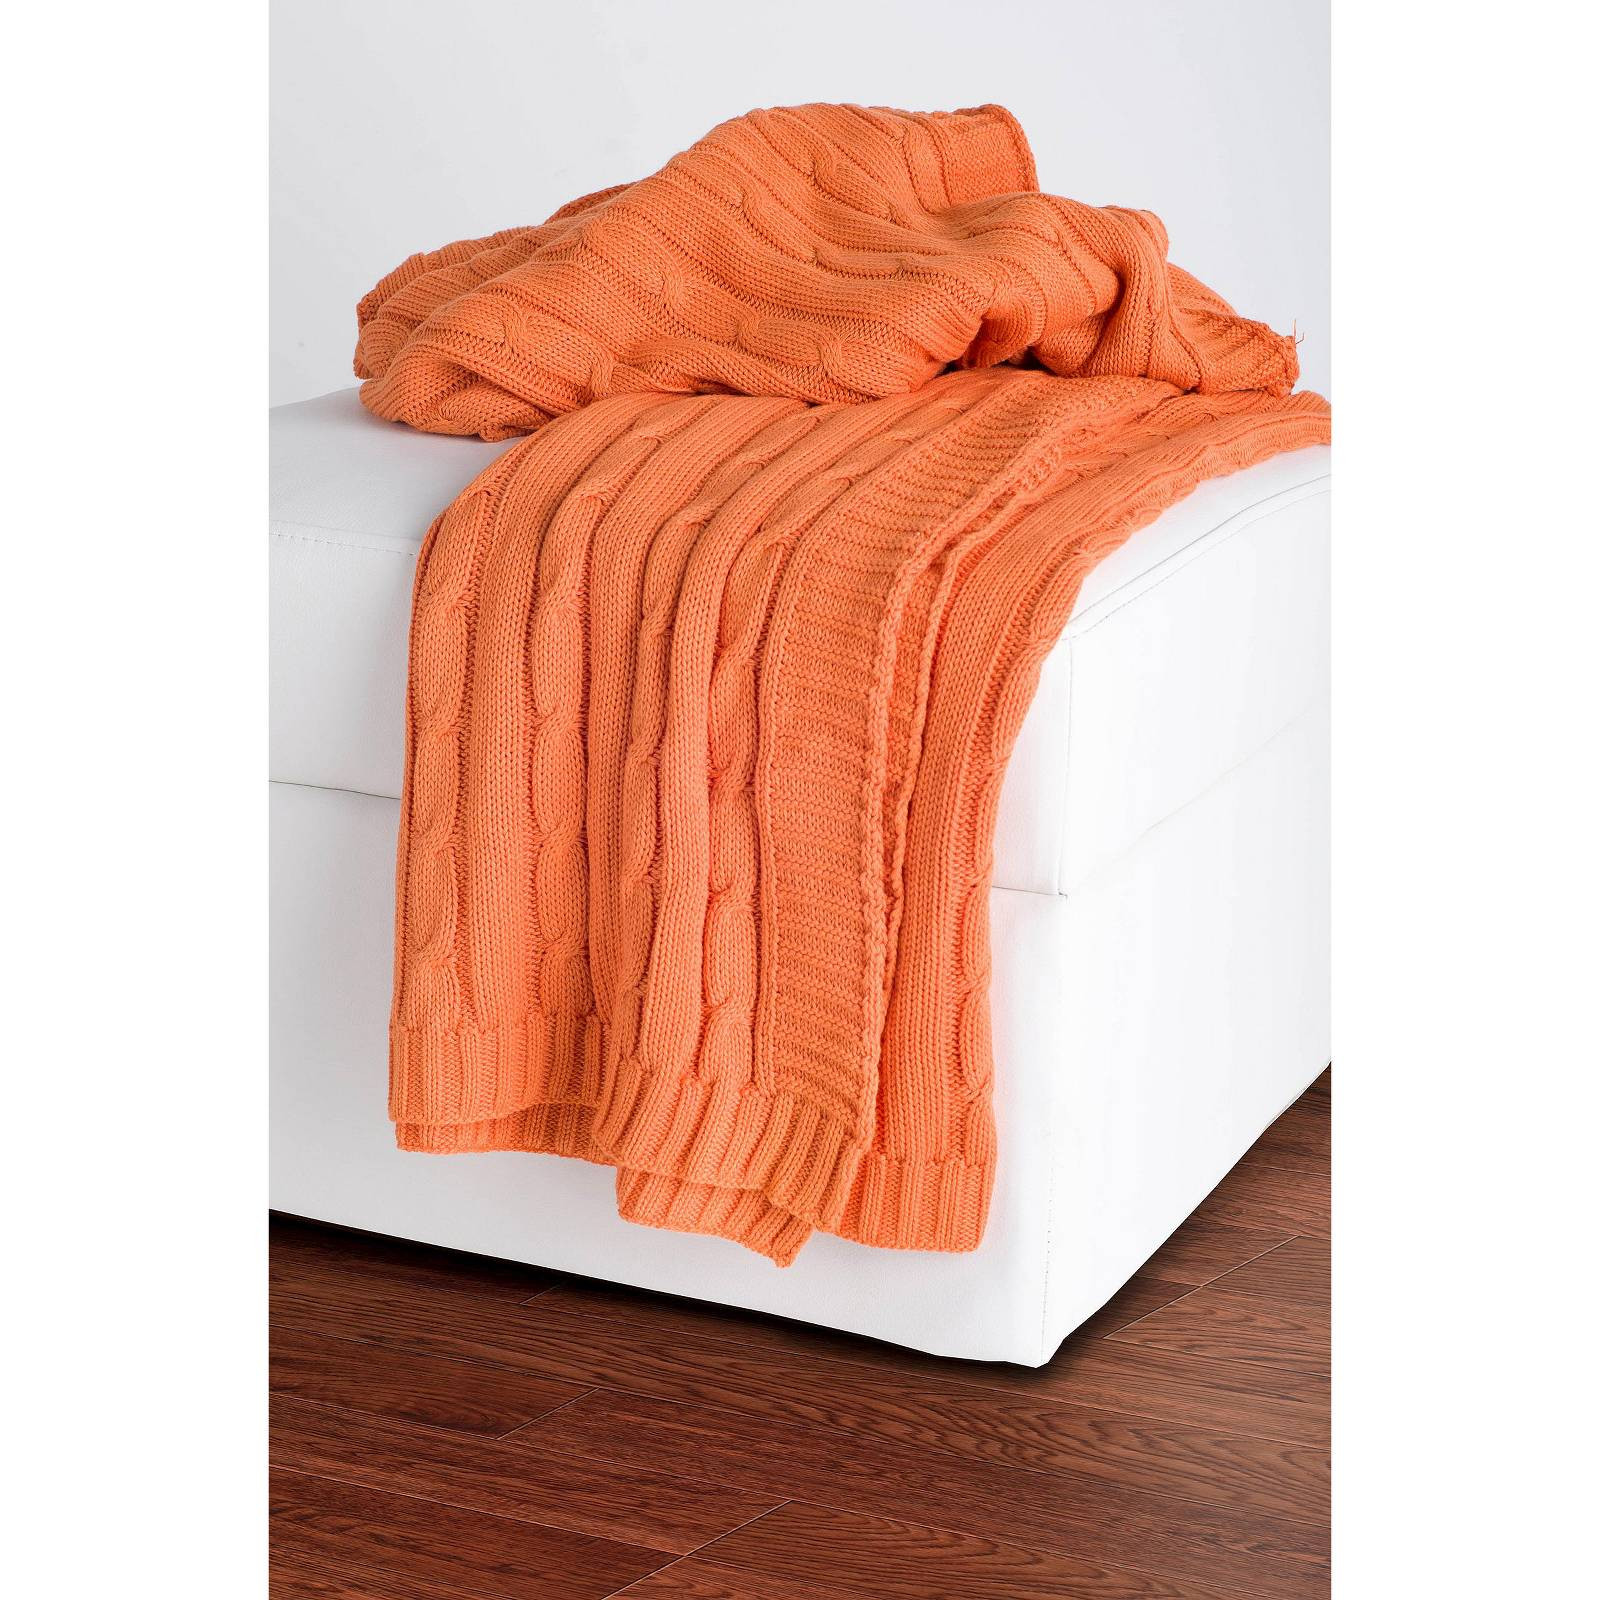 Unique Cable Knit Sweater Throw Rizzy Home Cable Knit Sweater Blanket Of Incredible 50 Photos Cable Knit Sweater Blanket